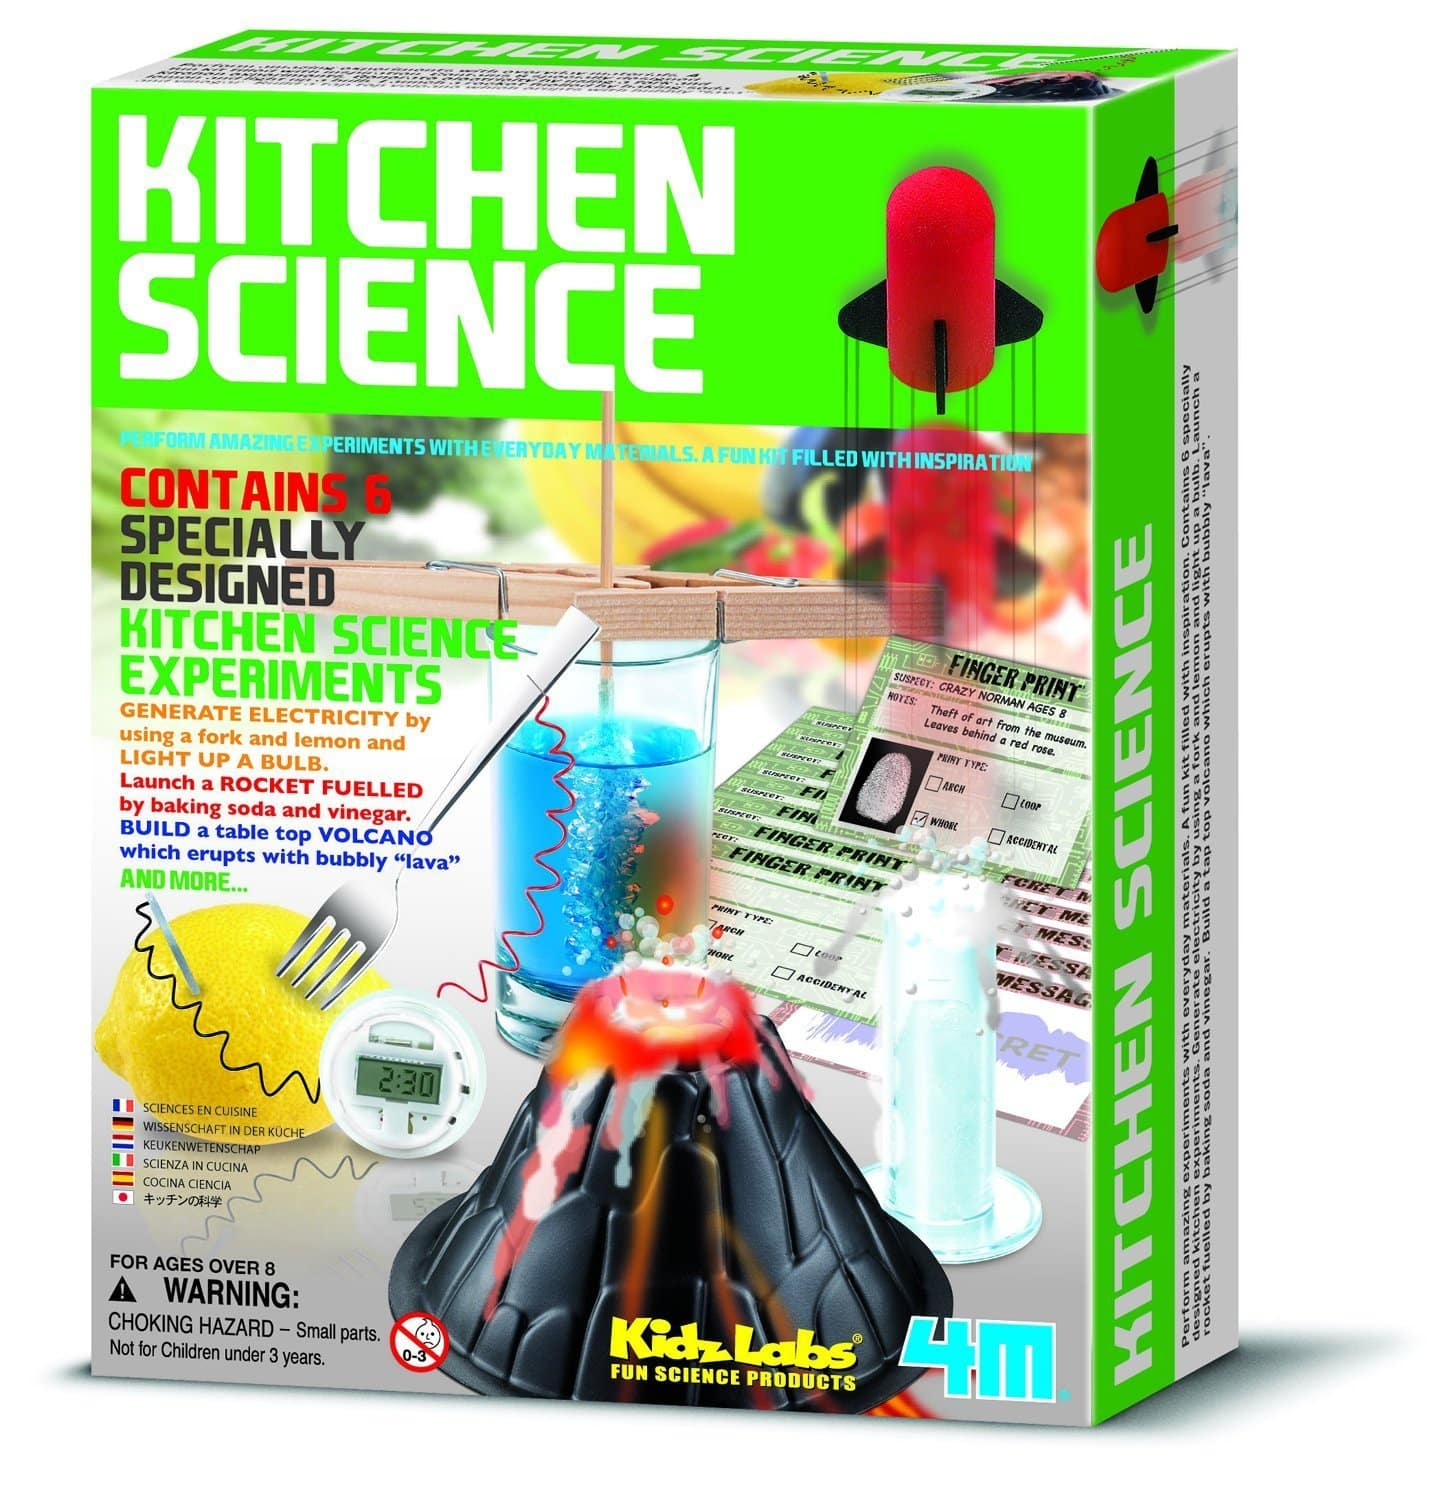 Best science toys for kids of all ages making science fun for everyone